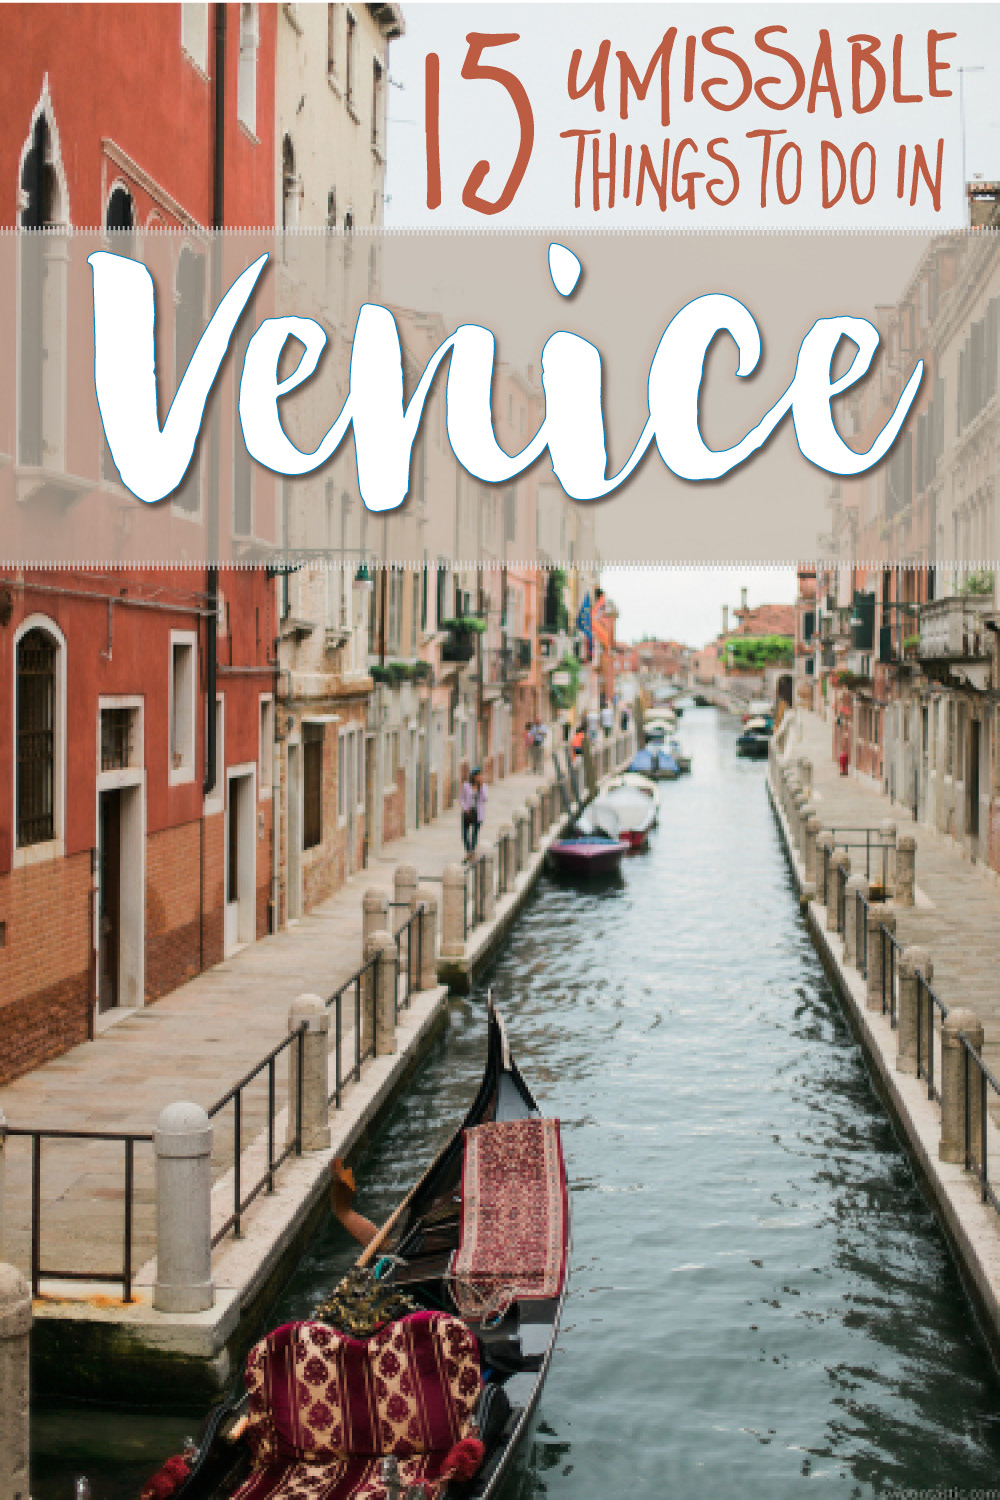 15 unforgettable things to do in venice italy 15 things to do in venice italy sciox Gallery